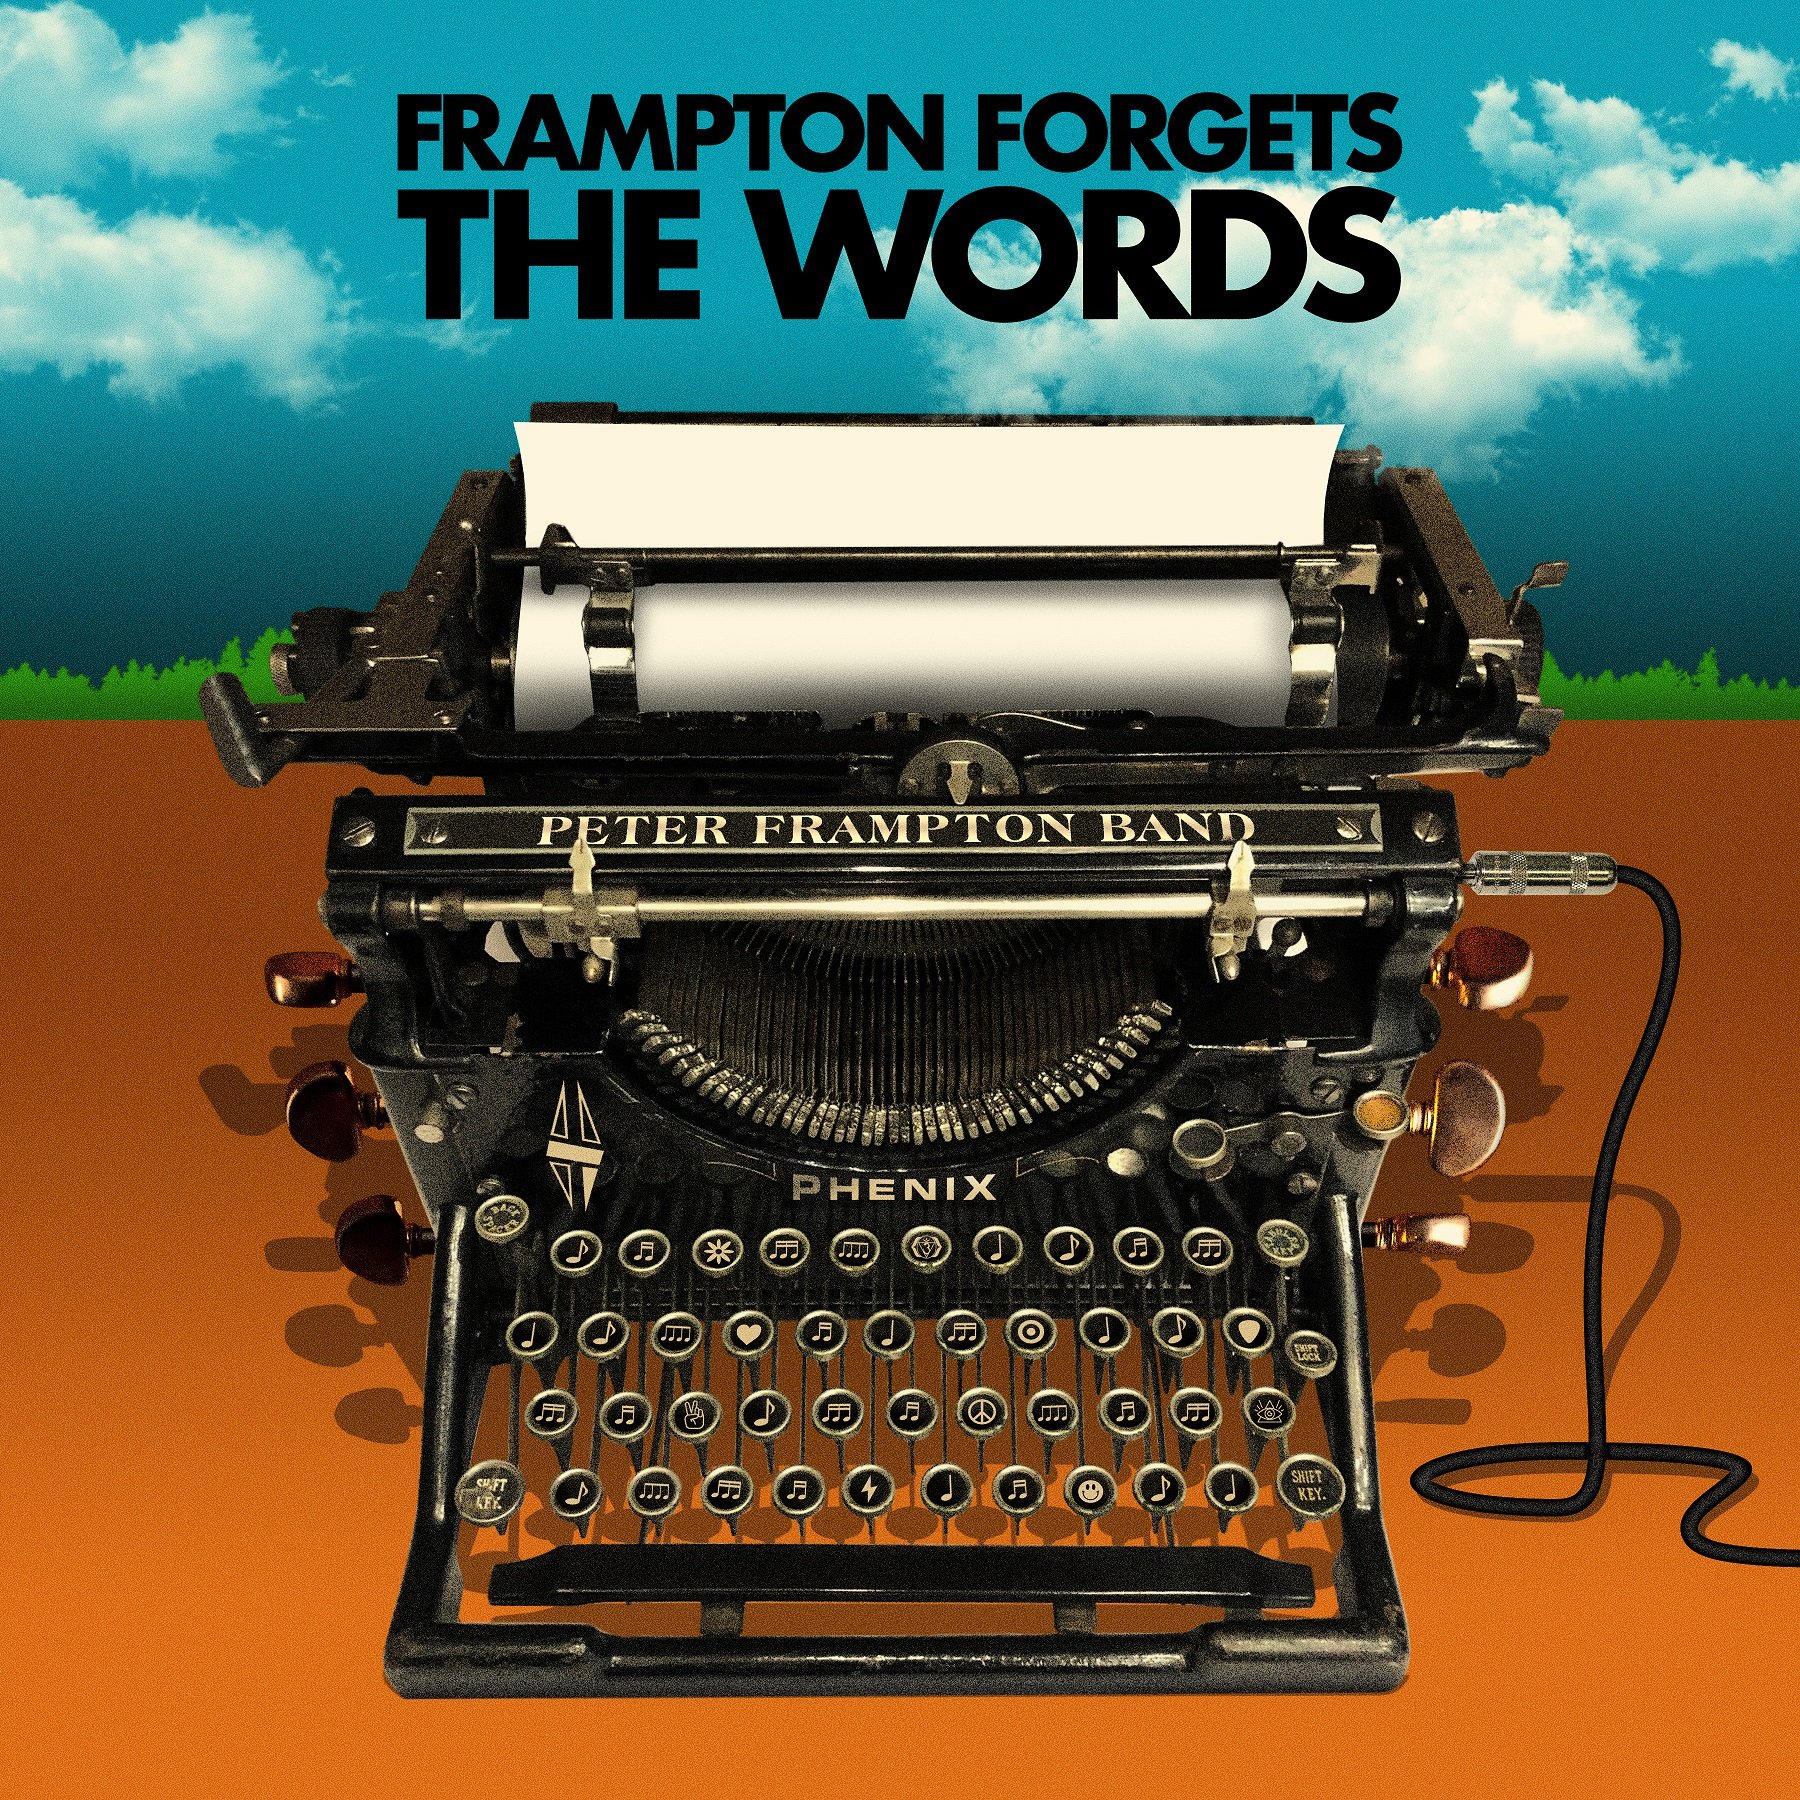 Peter Frampton Band-Frampton Forgets The Words-Cover-Final.jpeg